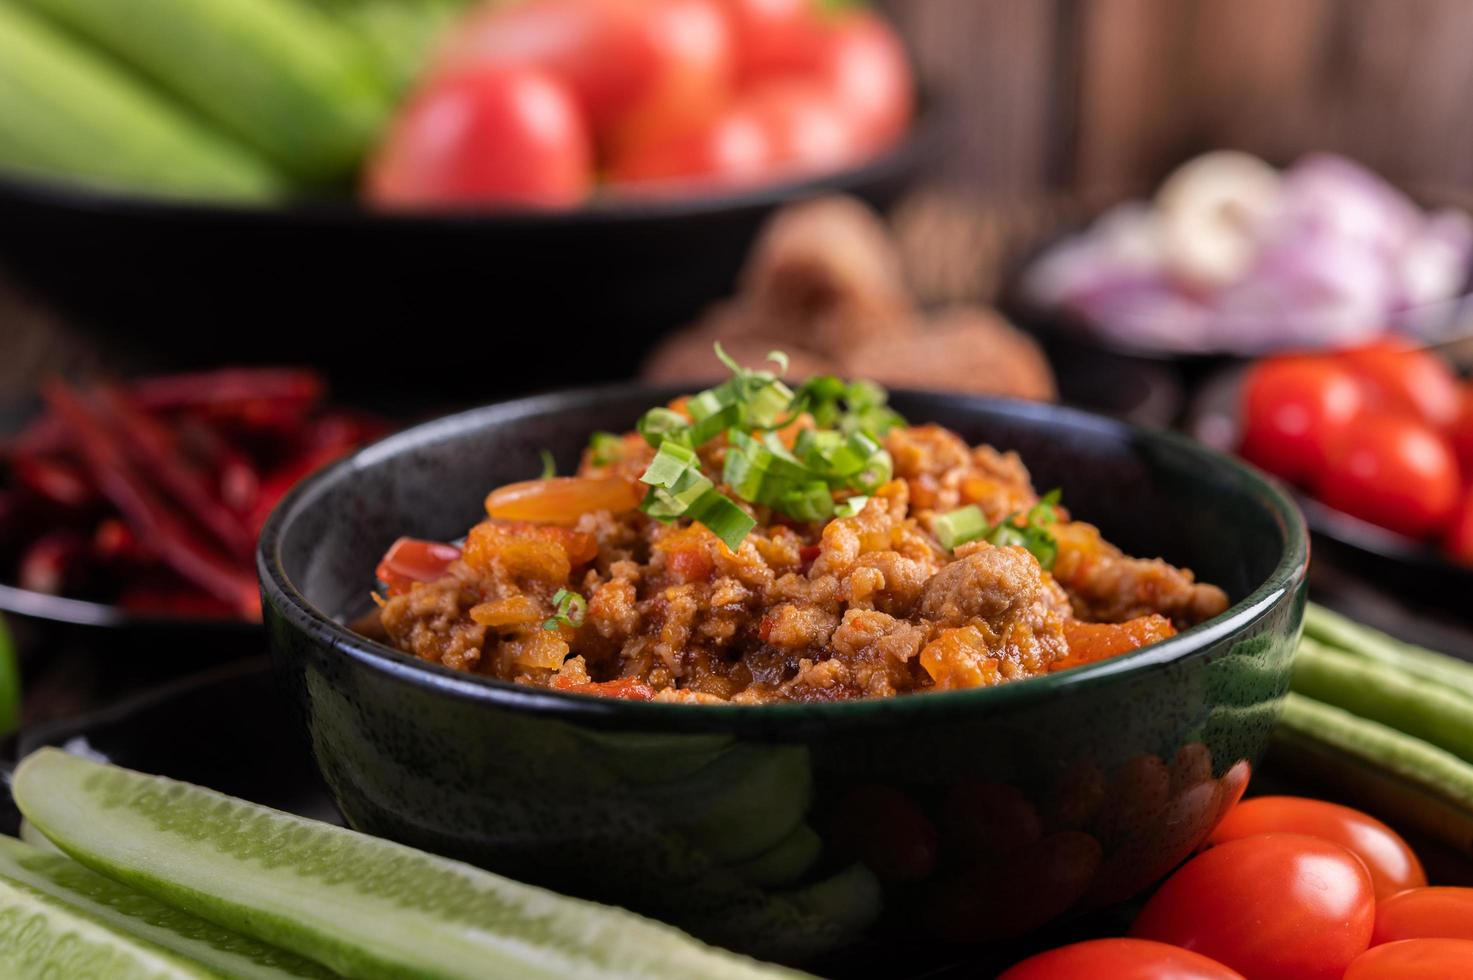 Sweet pork with cucumbers, long beans, tomatoes and side dishes photo